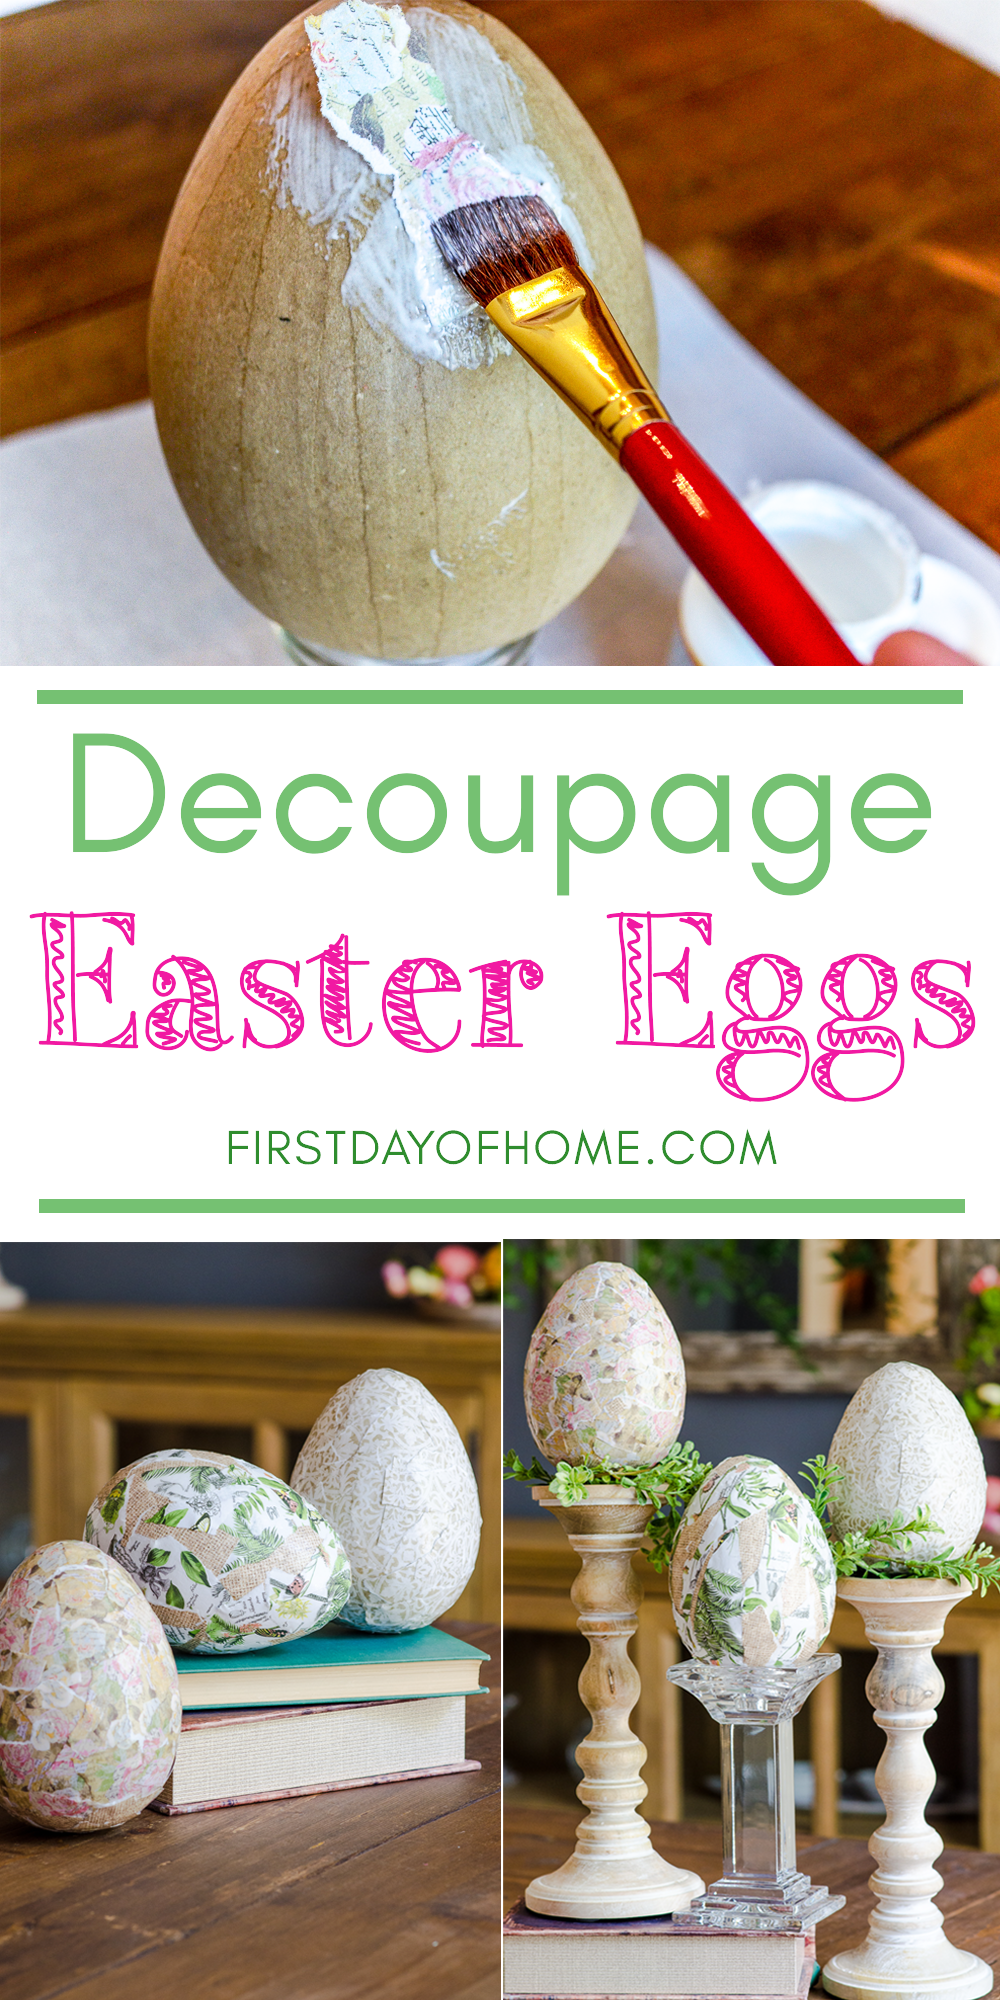 How to Make Decoupage Eggs for Easter Tutorial – First Day of